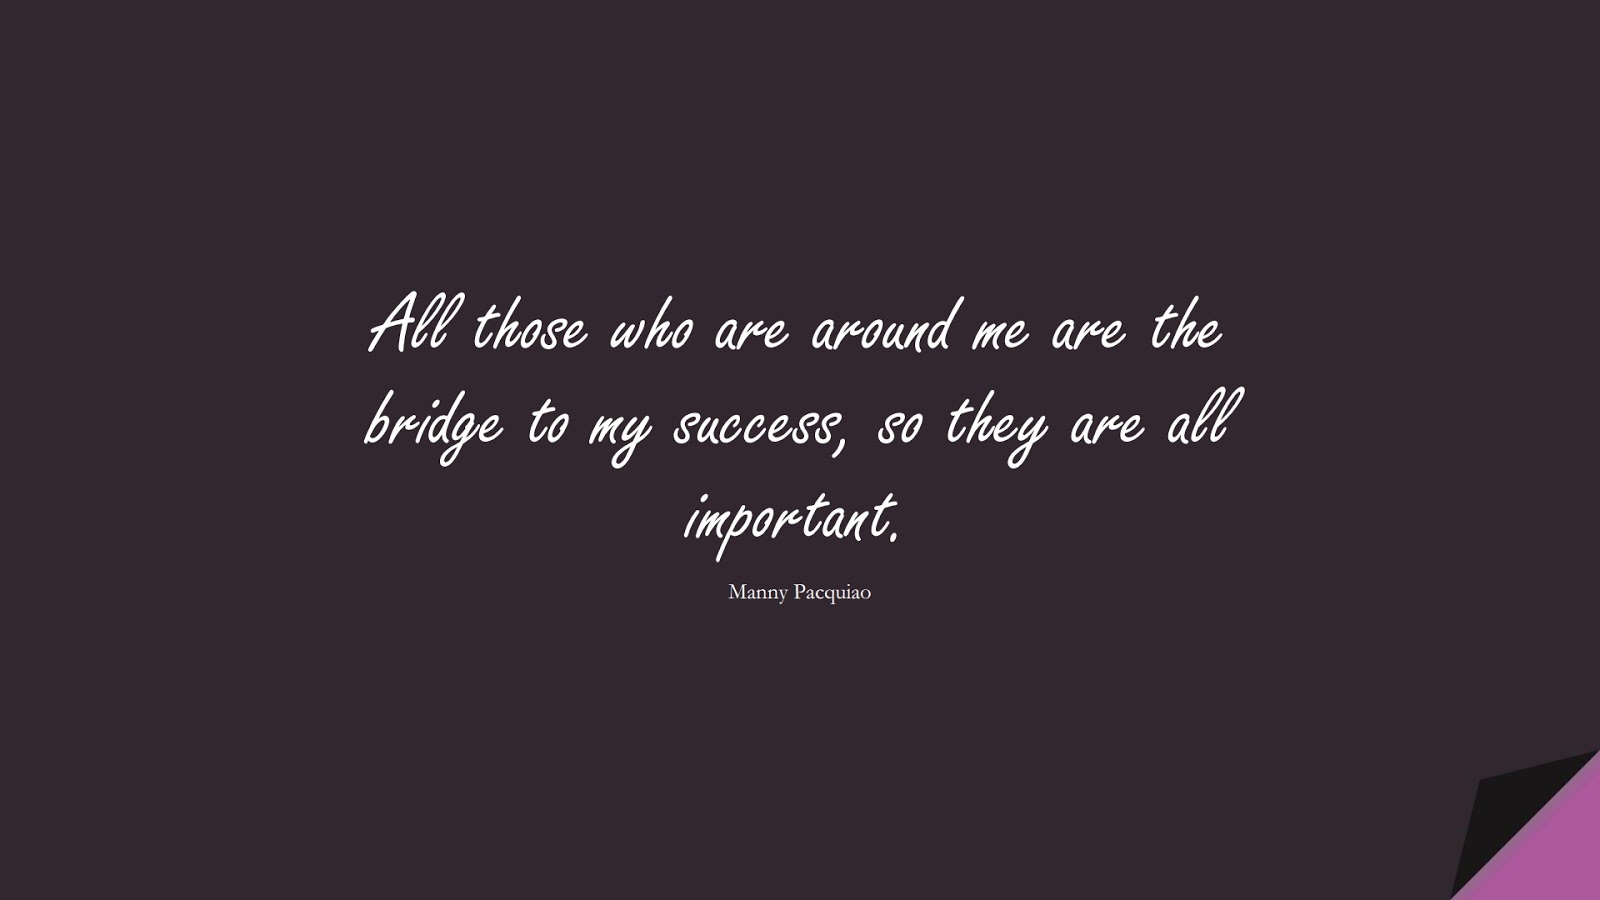 All those who are around me are the bridge to my success, so they are all important. (Manny Pacquiao);  #FamilyQuotes